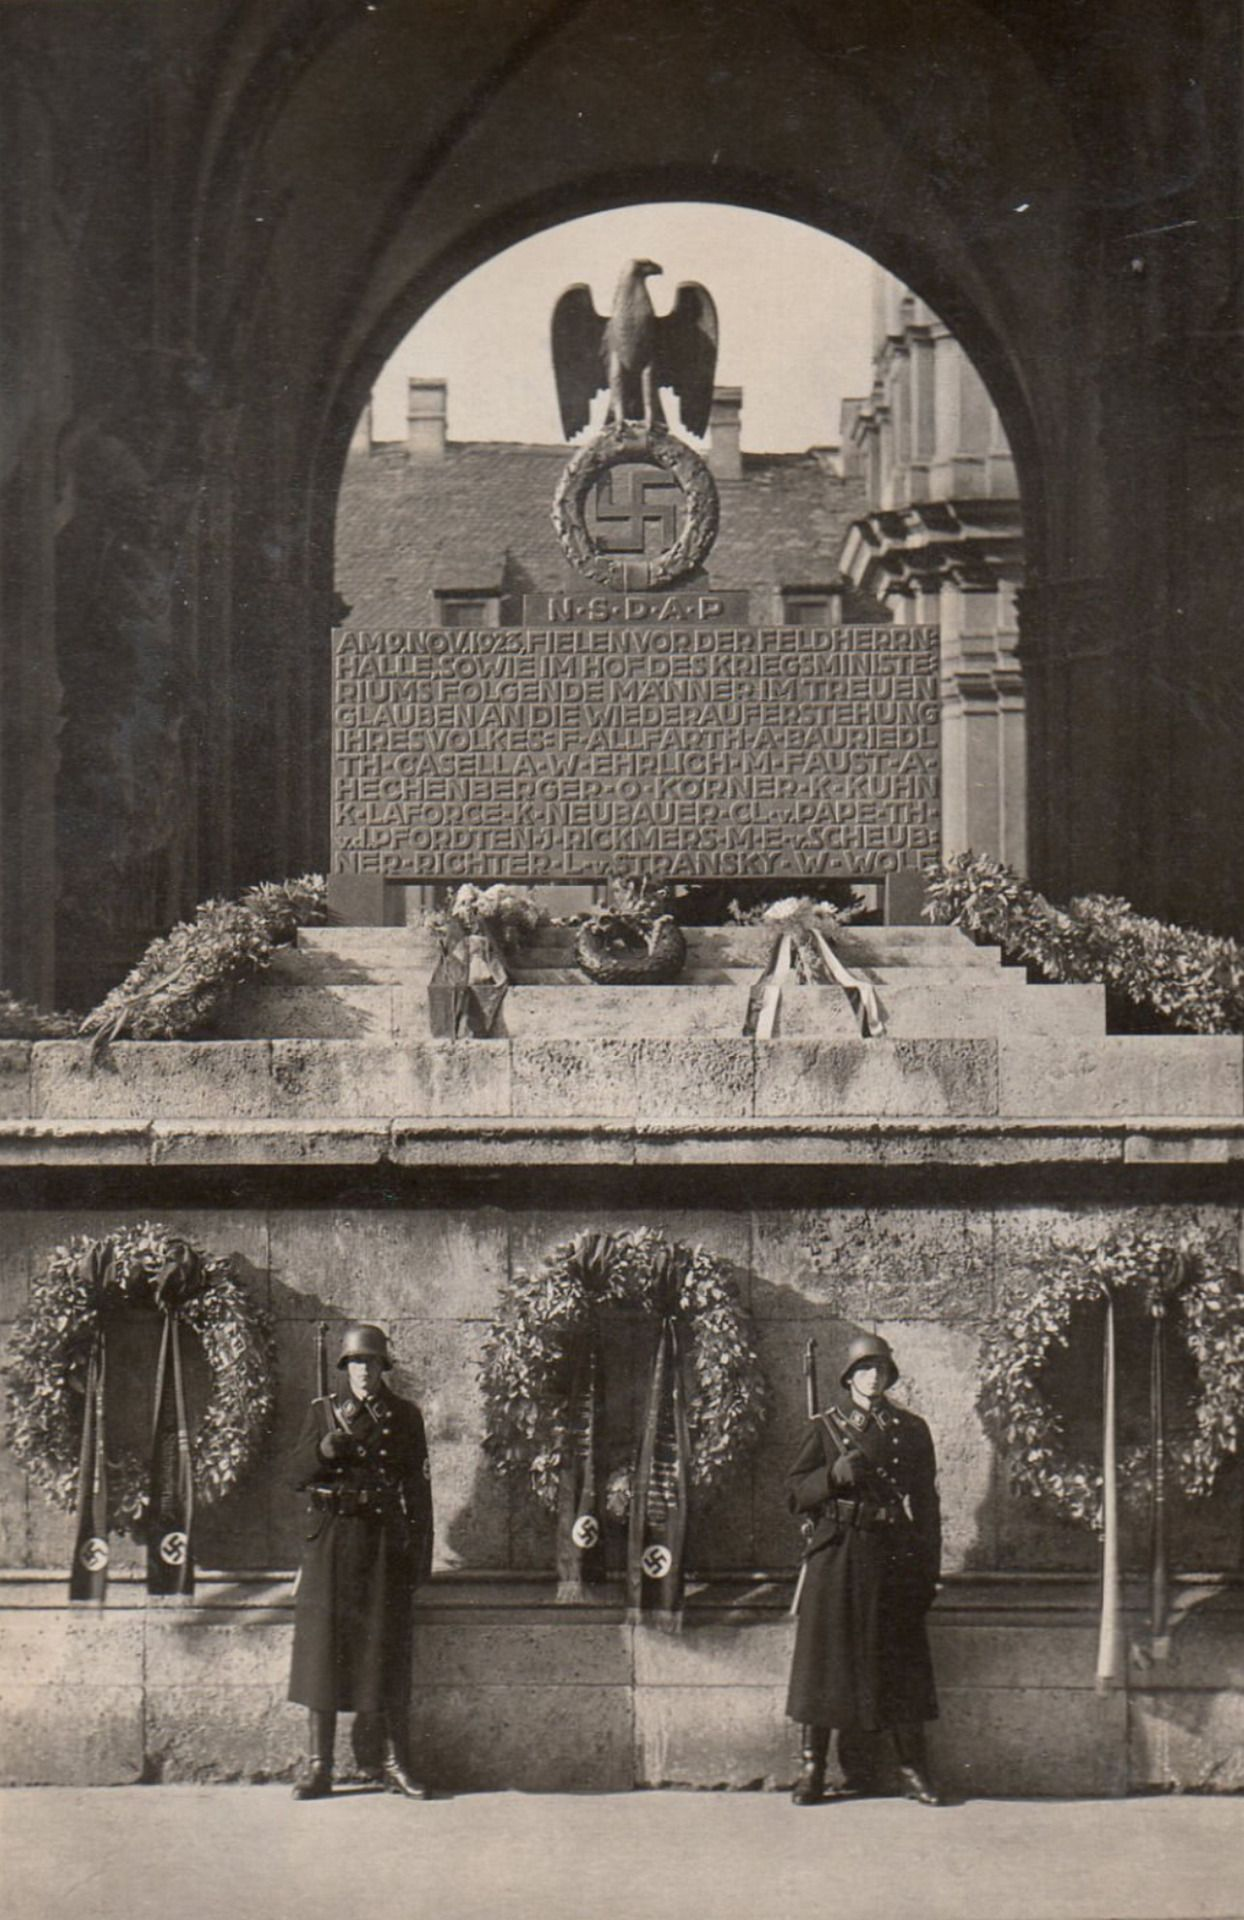 East Side München this is a memorial cenotaph on the east side of the munich feldherrnhalle on the